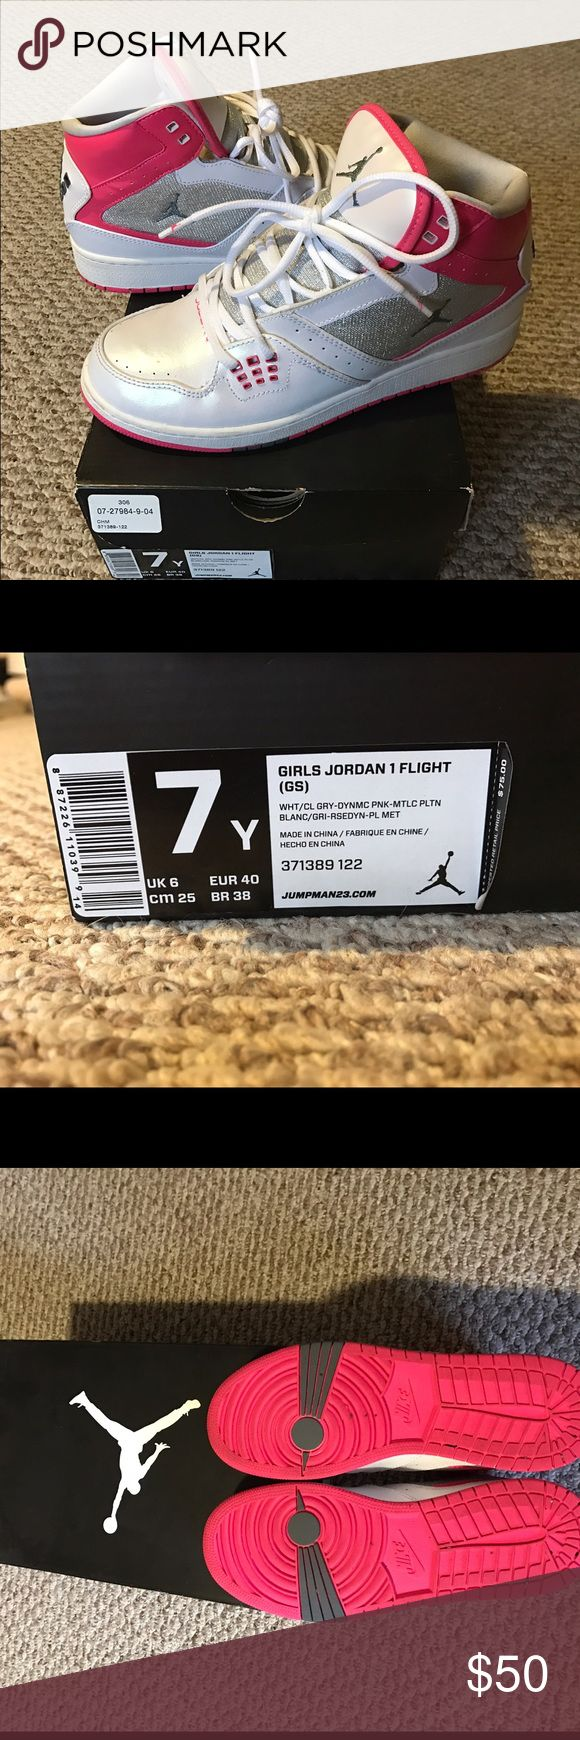 Jordan flight size 7Y Jordan 7Y white and pink high top. Only worn a few times and stored in box. Jordan Shoes Athletic Shoes